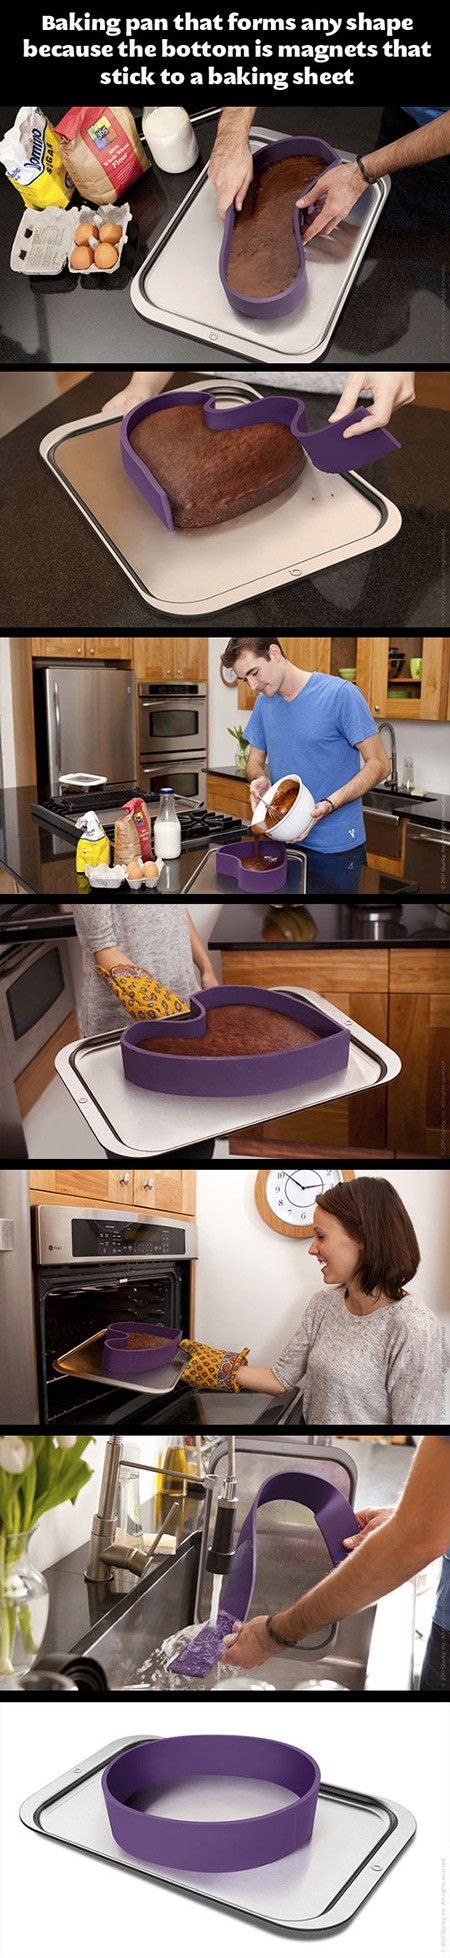 I know it's not food, but this would the perfect kitchen gadget! Need one